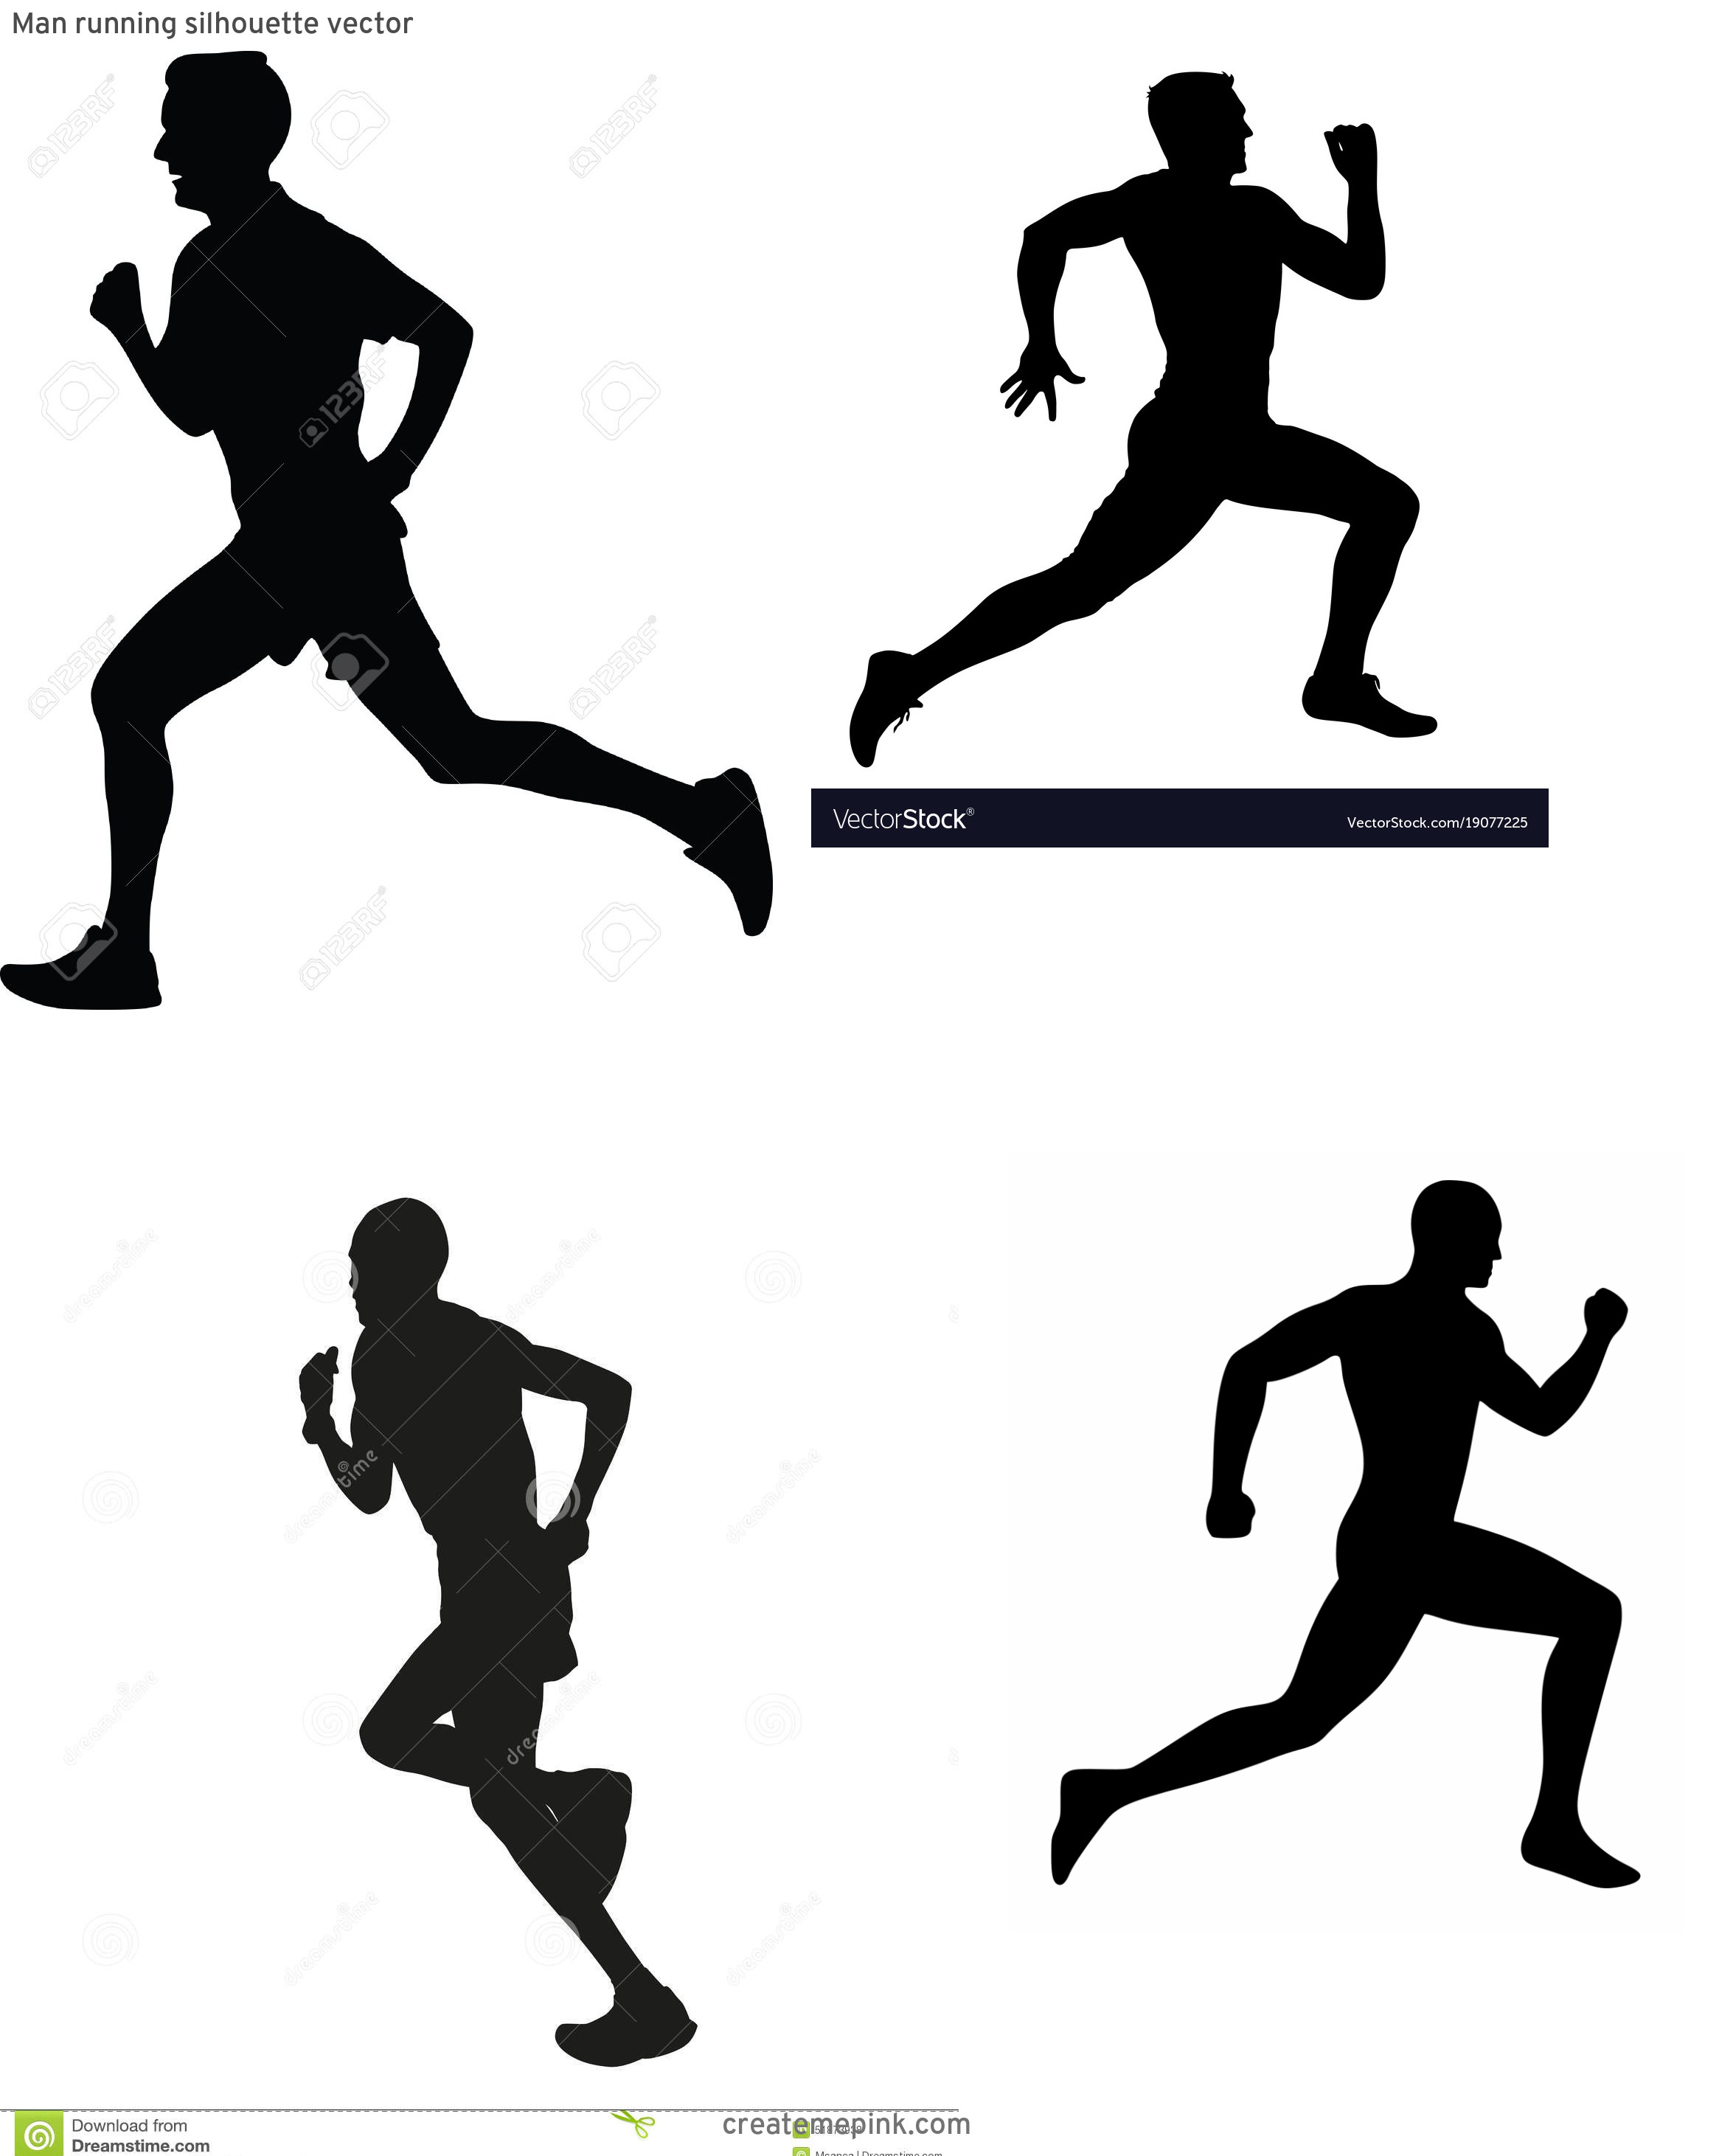 White Runner Silhouette Vector: Man Running Silhouette Vector